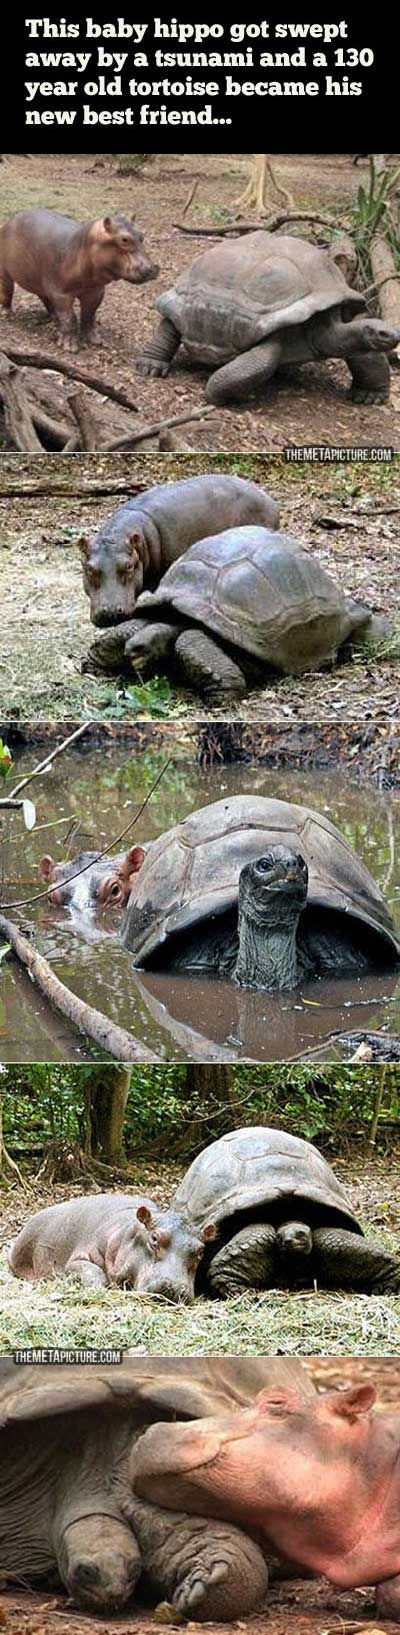 Baby hippo and 130 year old tortoise become best friends…